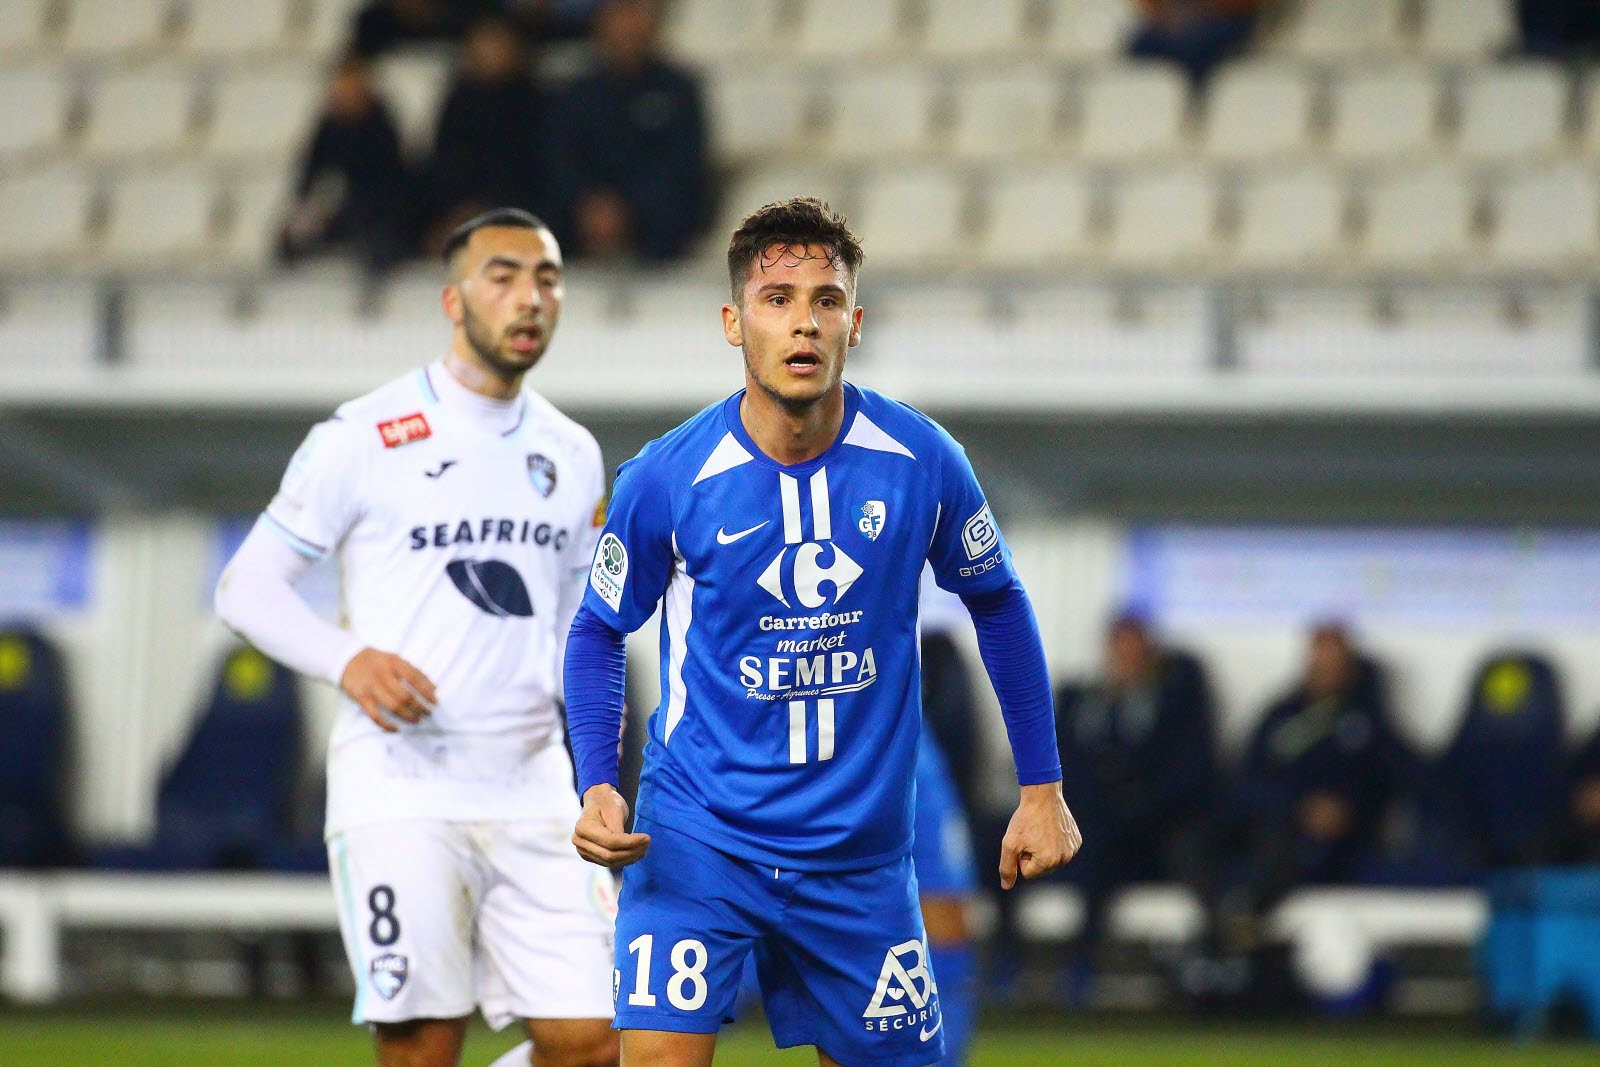 Grenoble vs Chateauroux Free Betting Tips